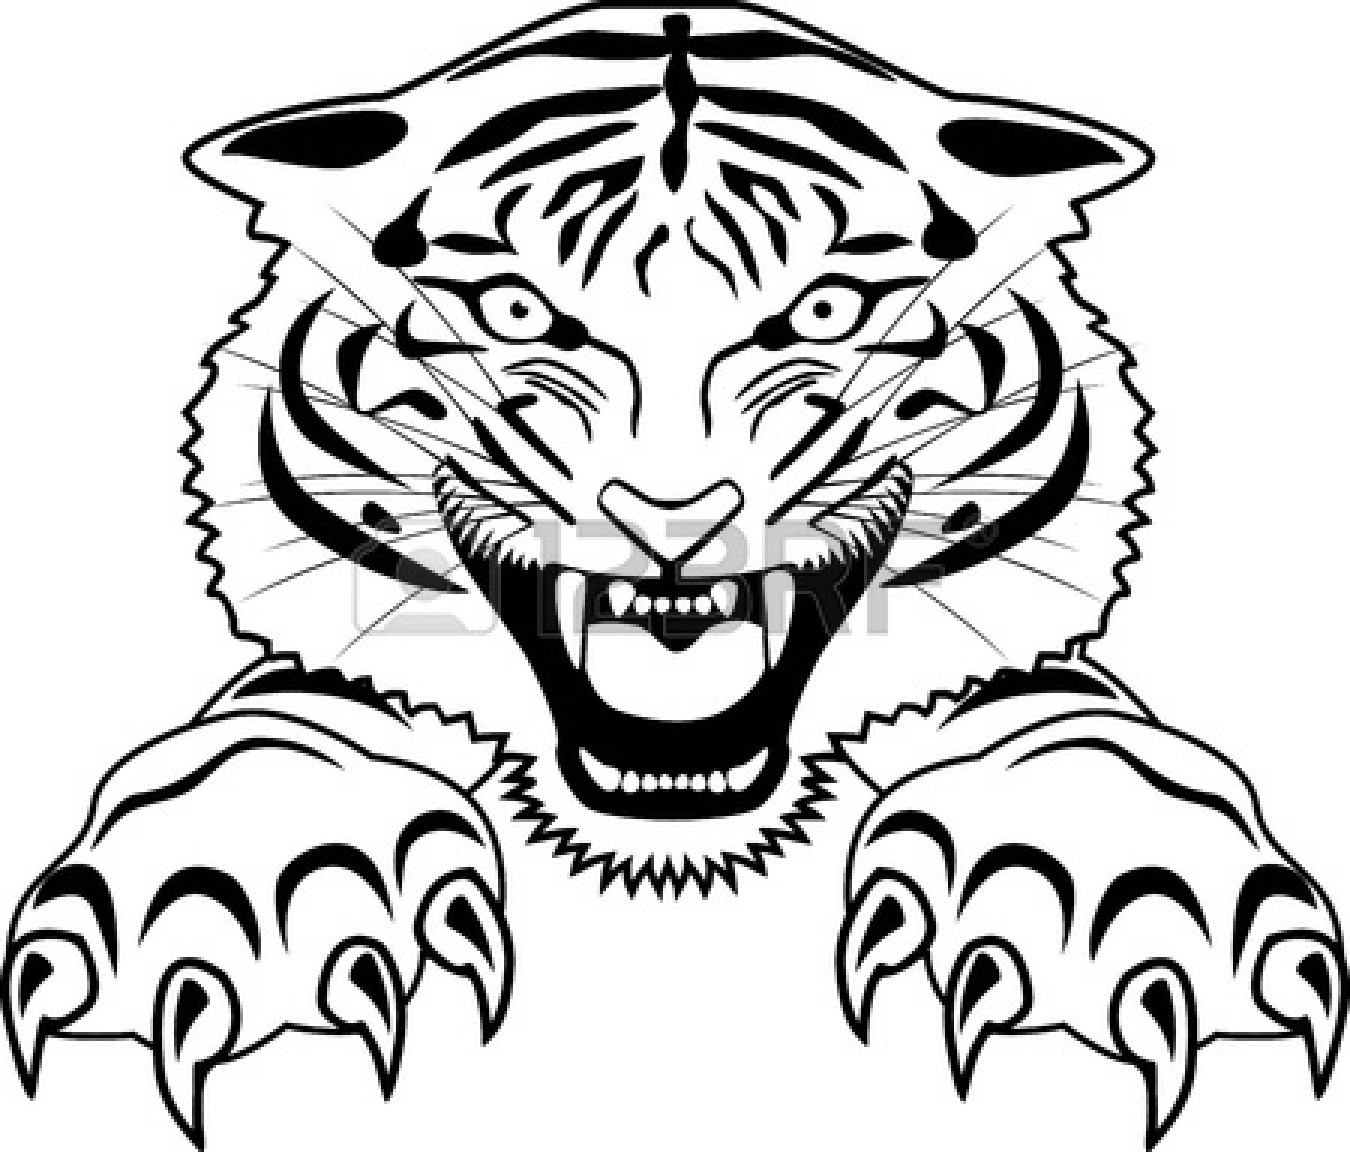 Easy tiger face sketch